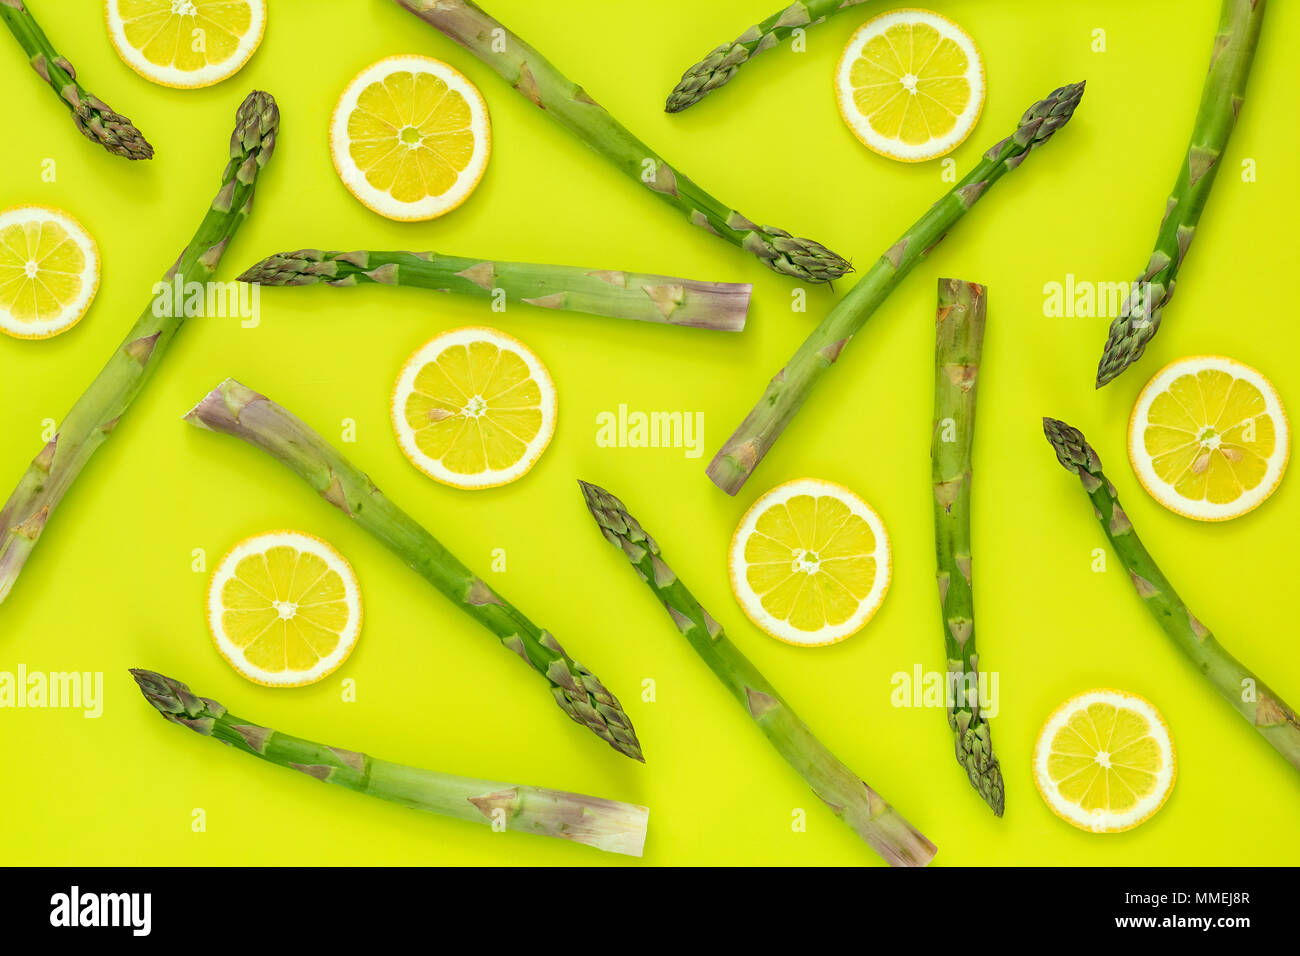 Beautiful food art background. Asparagus sprouts and sliced lemon on bright green surface. - Stock Image